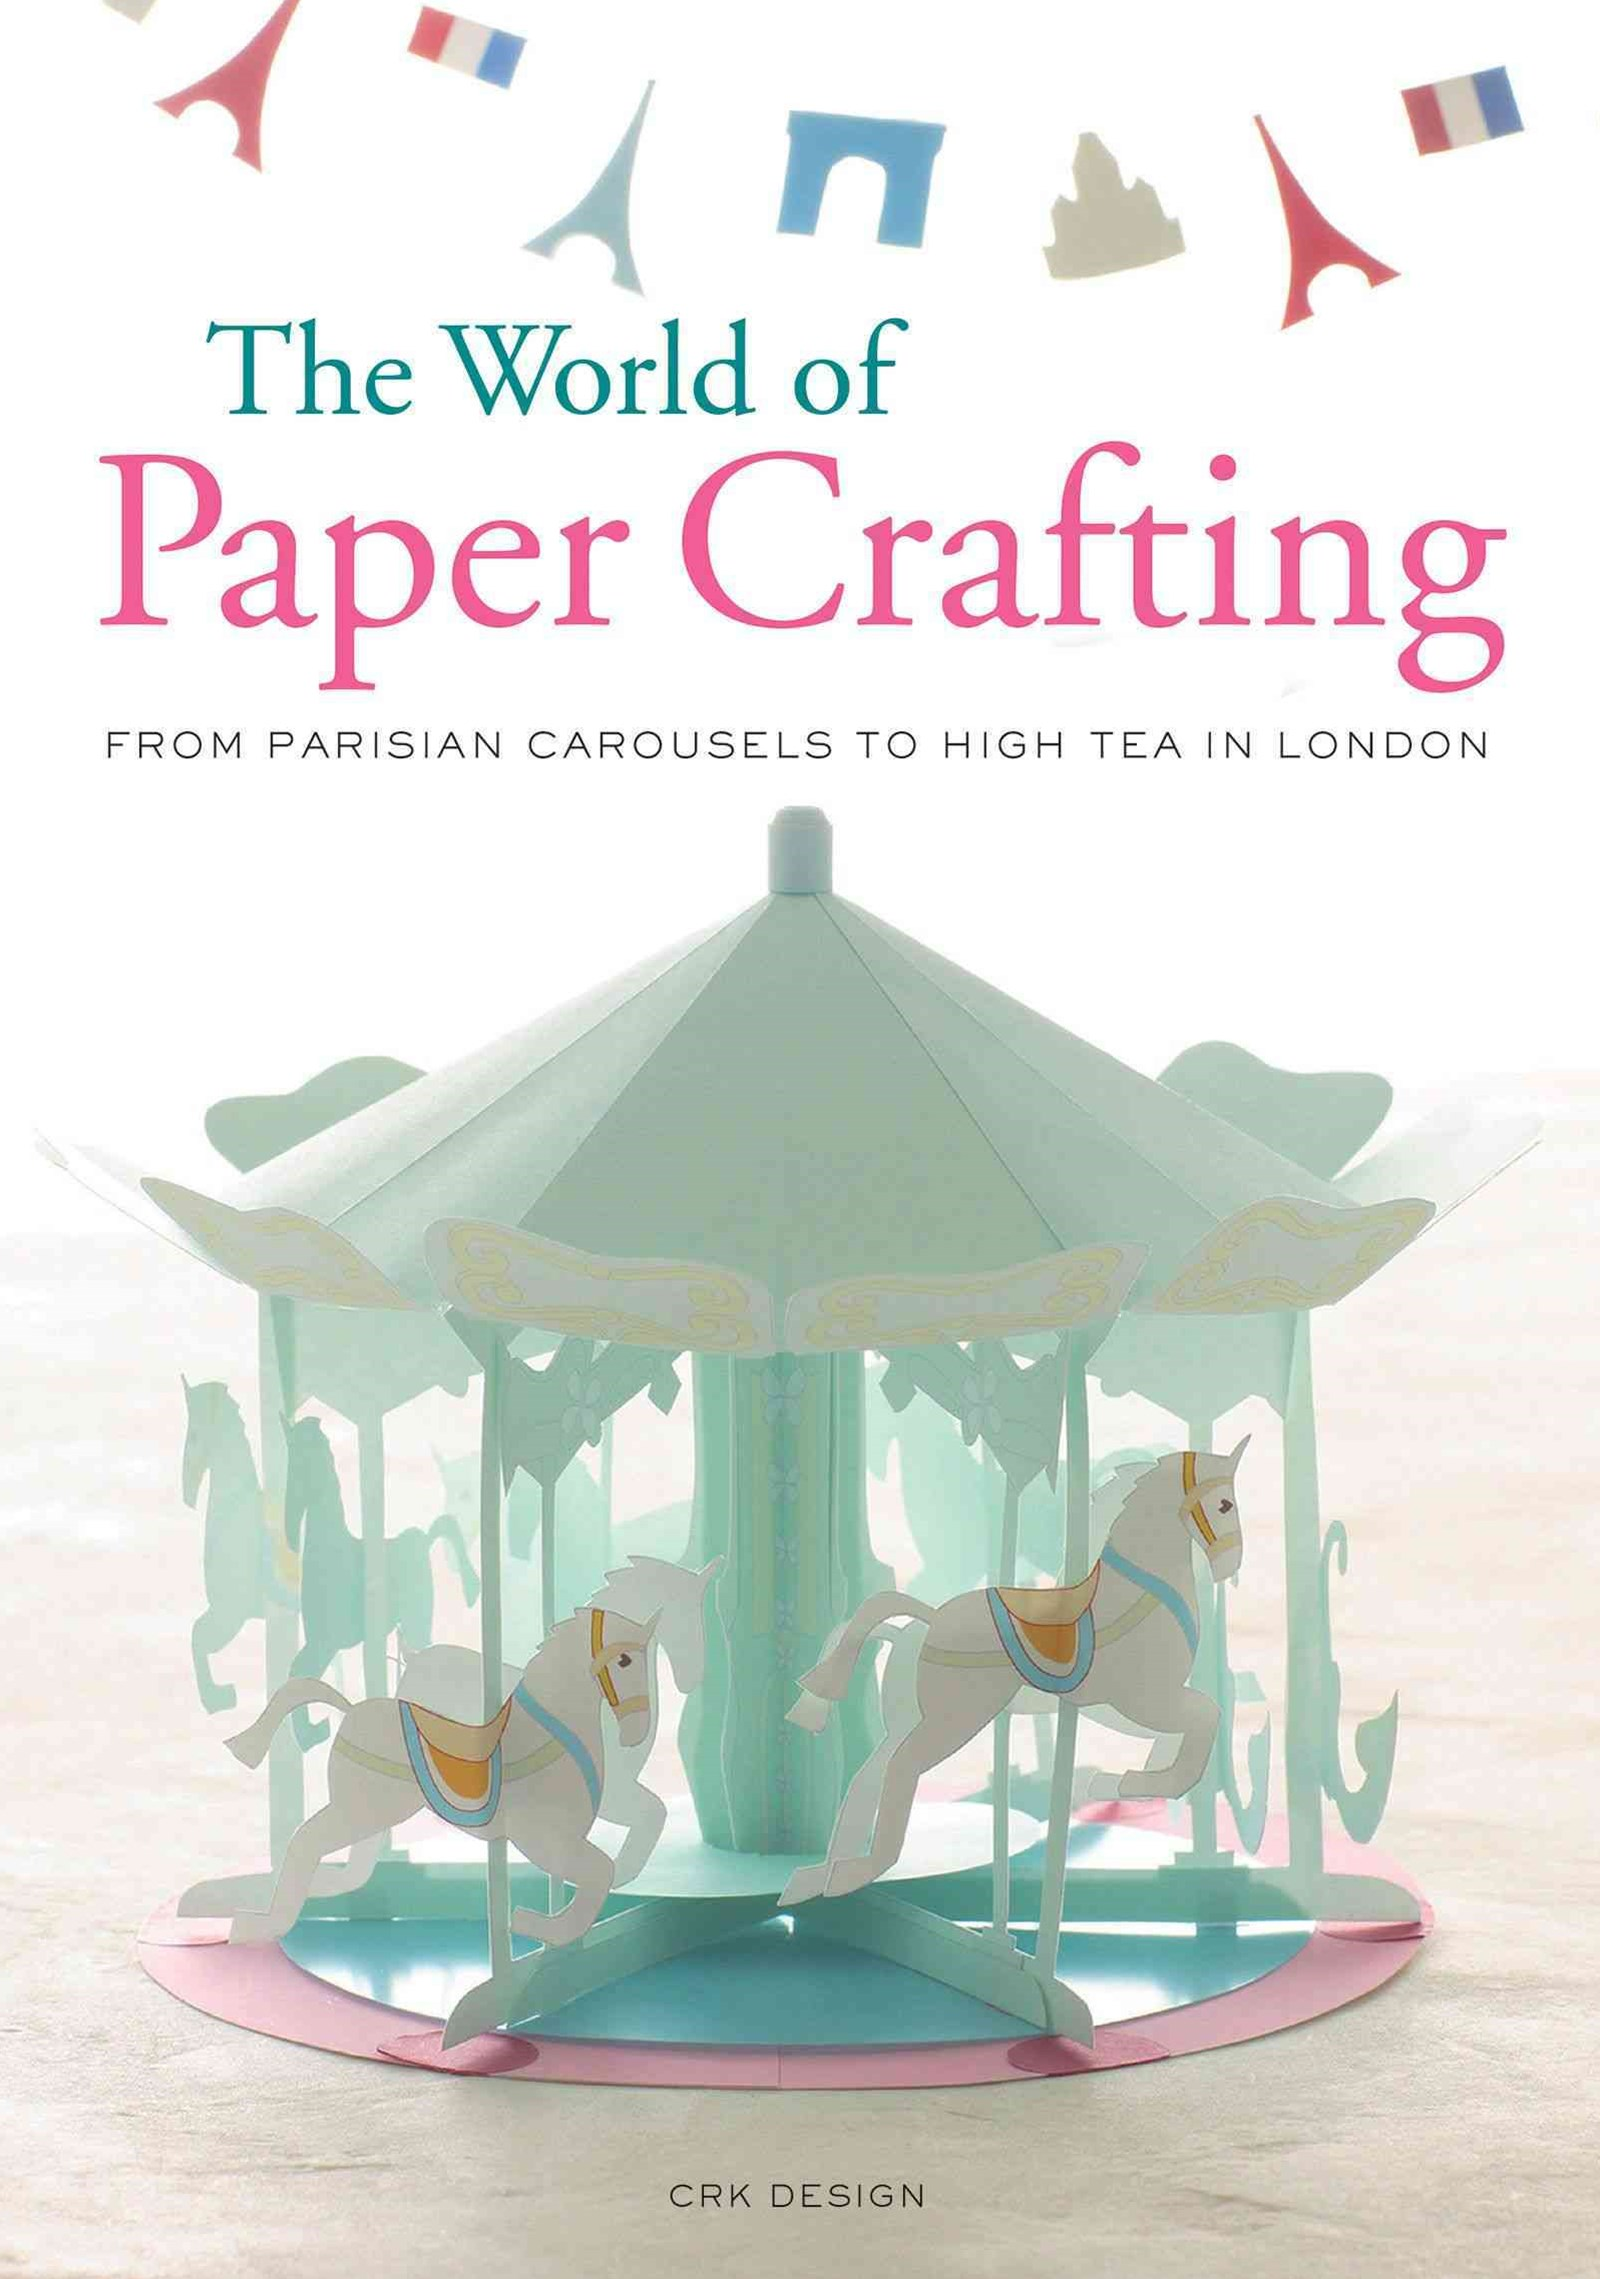 The World of Paper Crafting: From Parisian Carousels to High Tea in London